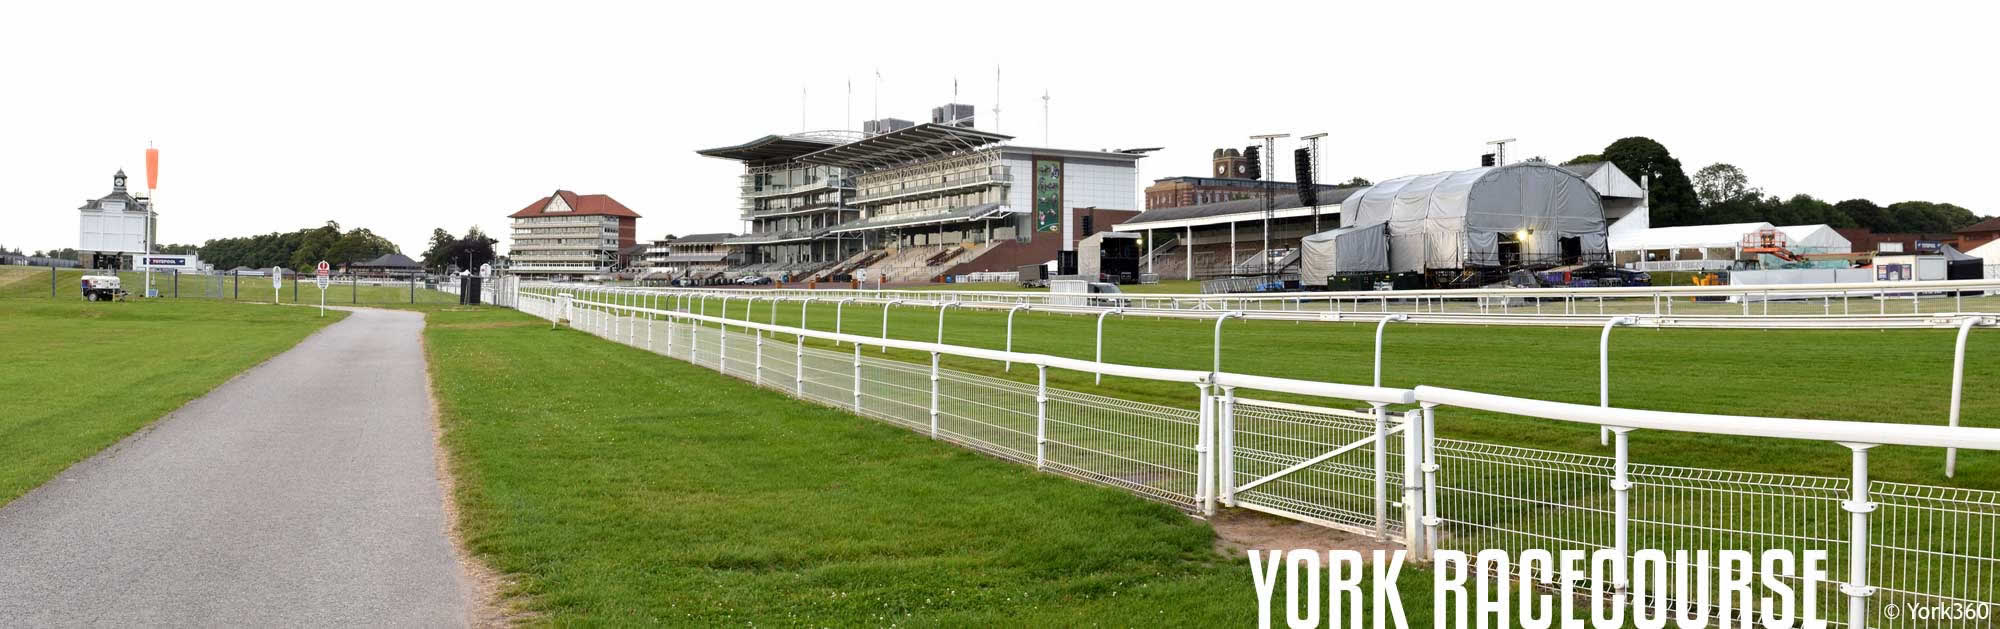 Image result for york racecourse